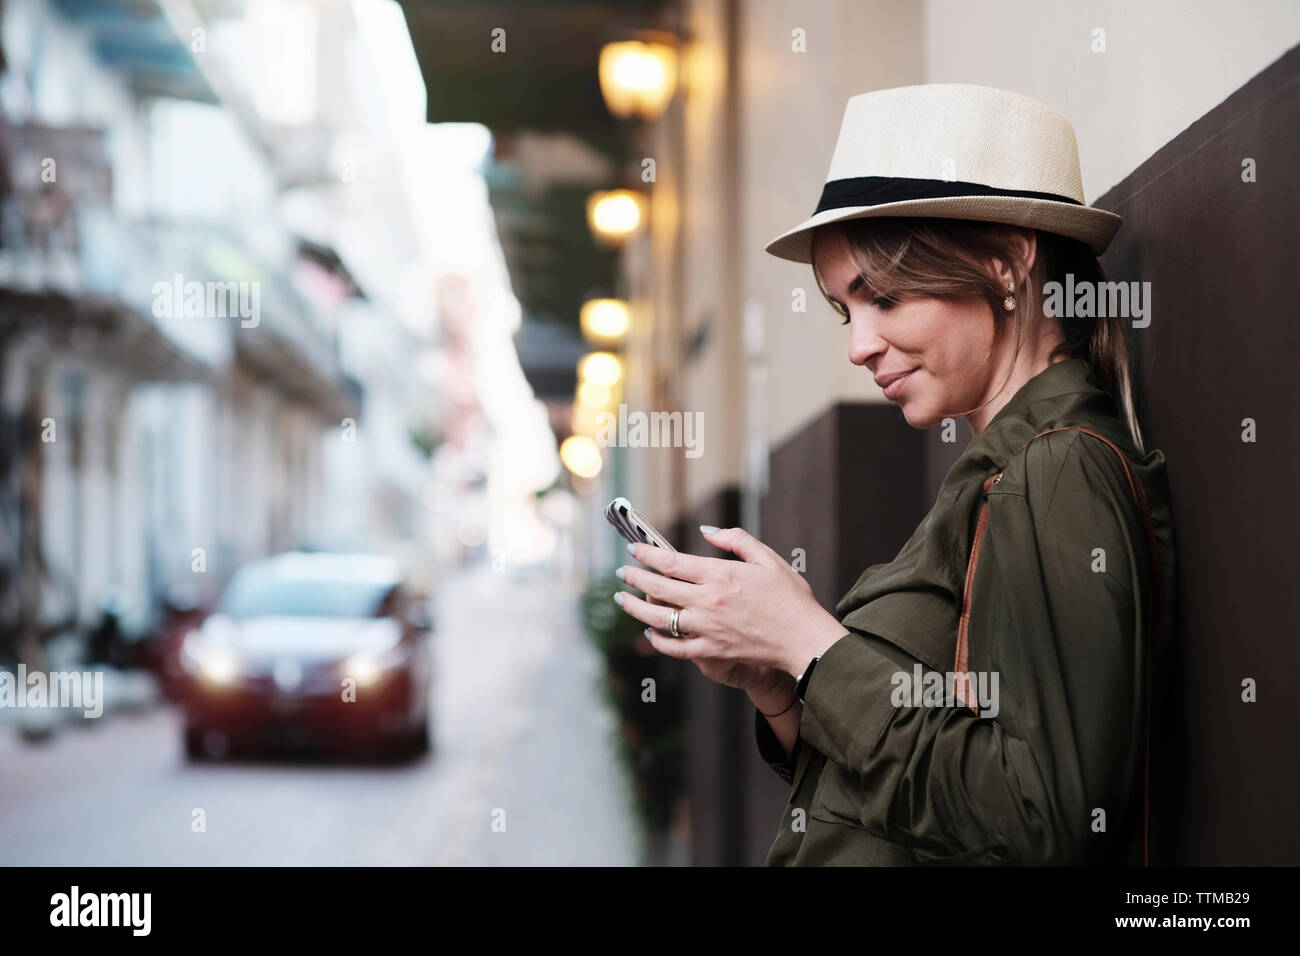 Young Woman Vacationing in Panama waits for Uber car in Casco Antiguo Stock Photo